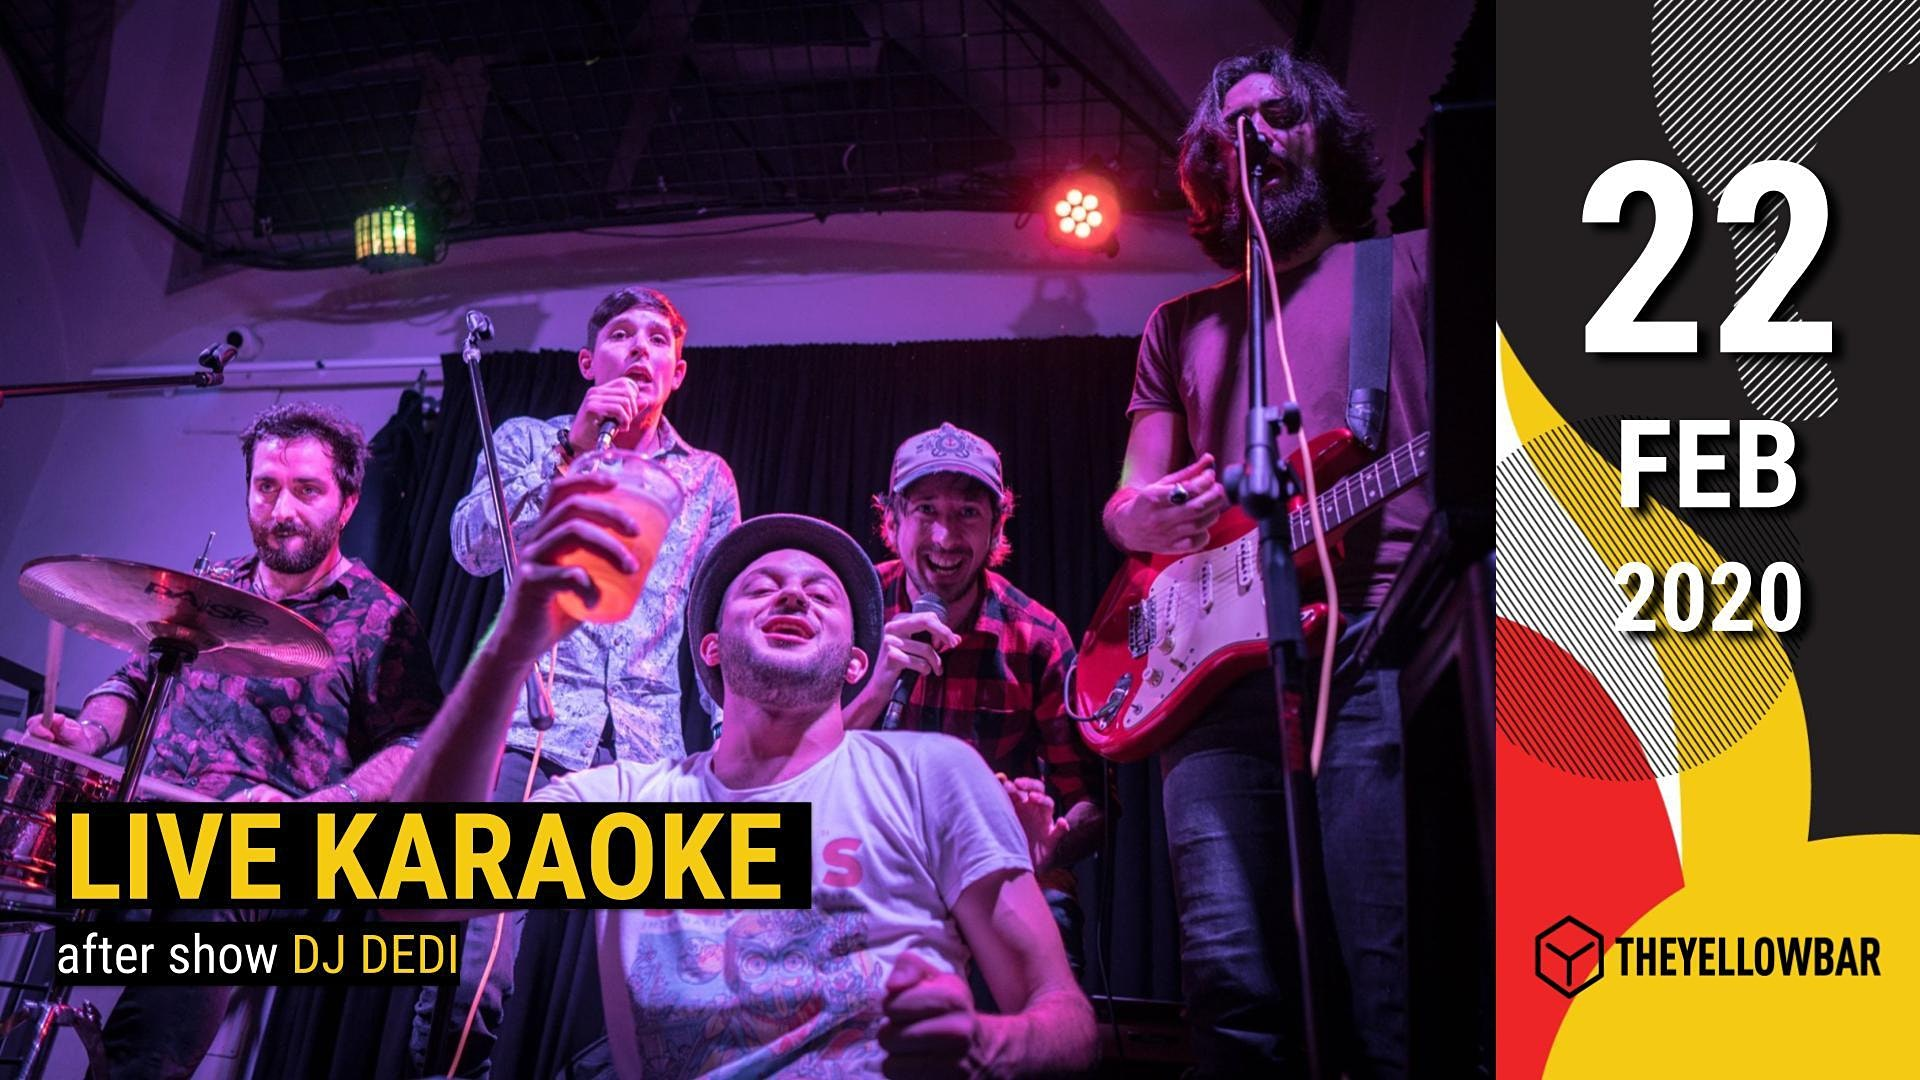 Live Karaoke - The Yellow Bar